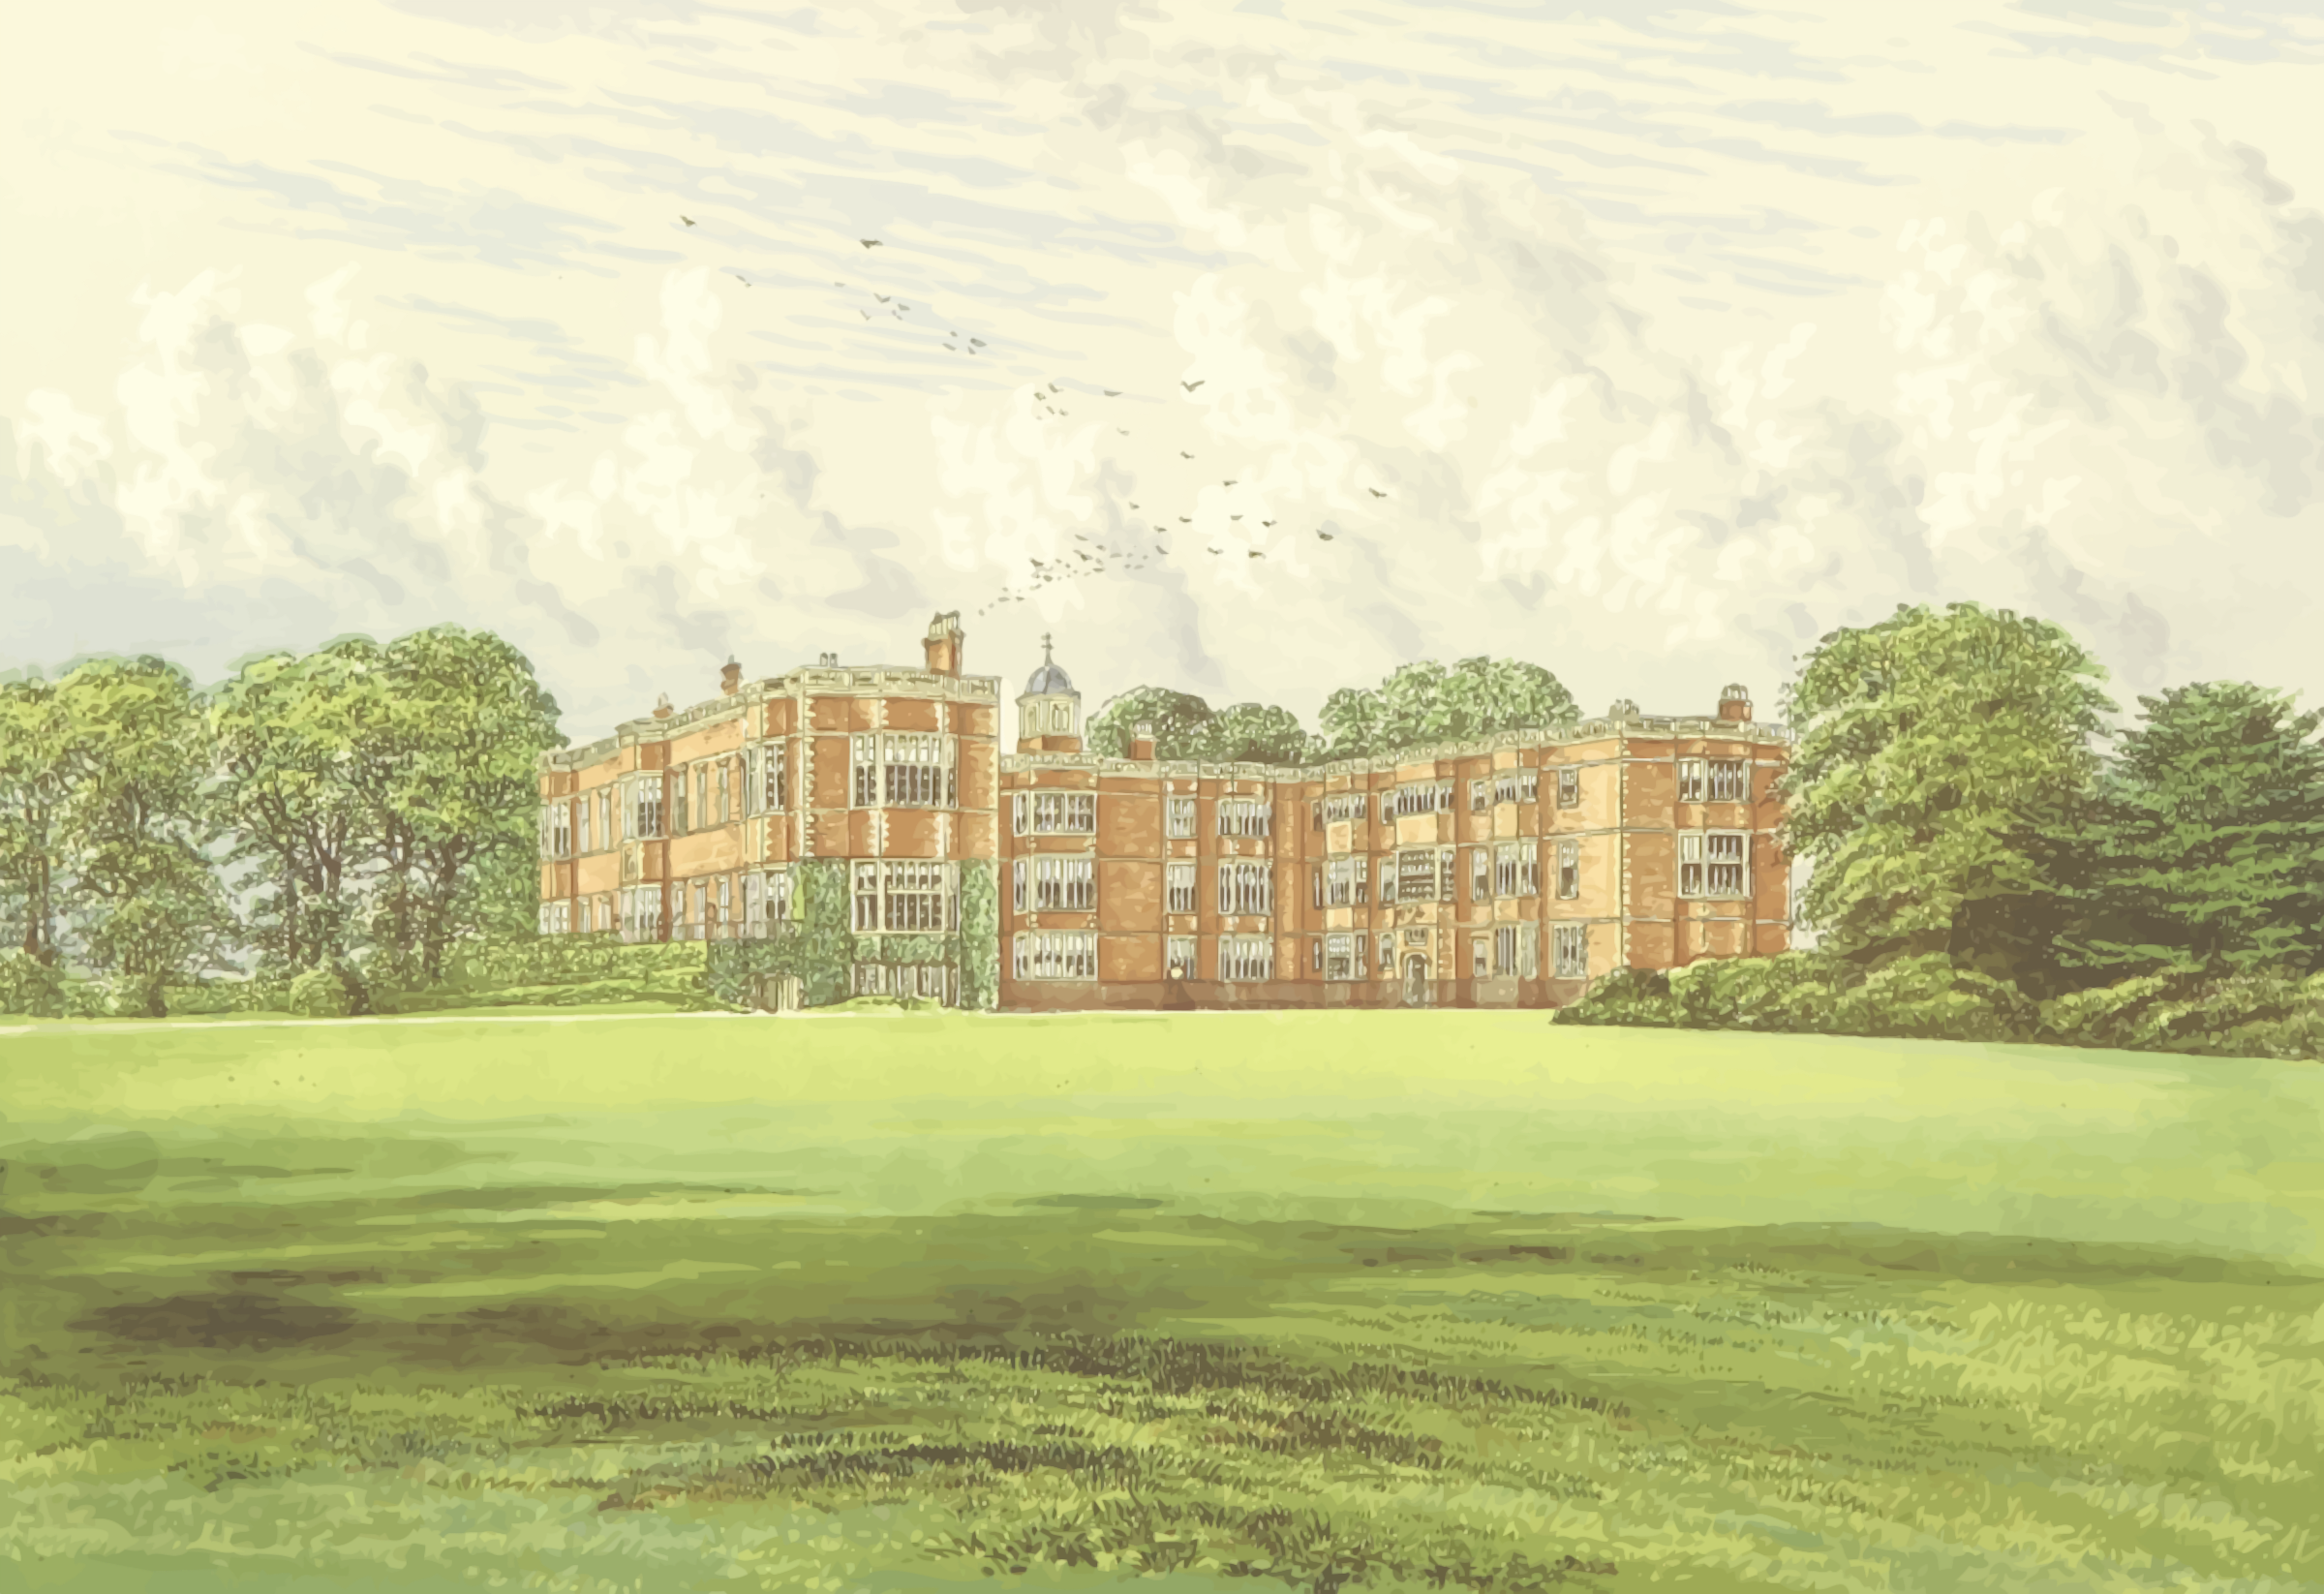 Temple Newsam by Firkin